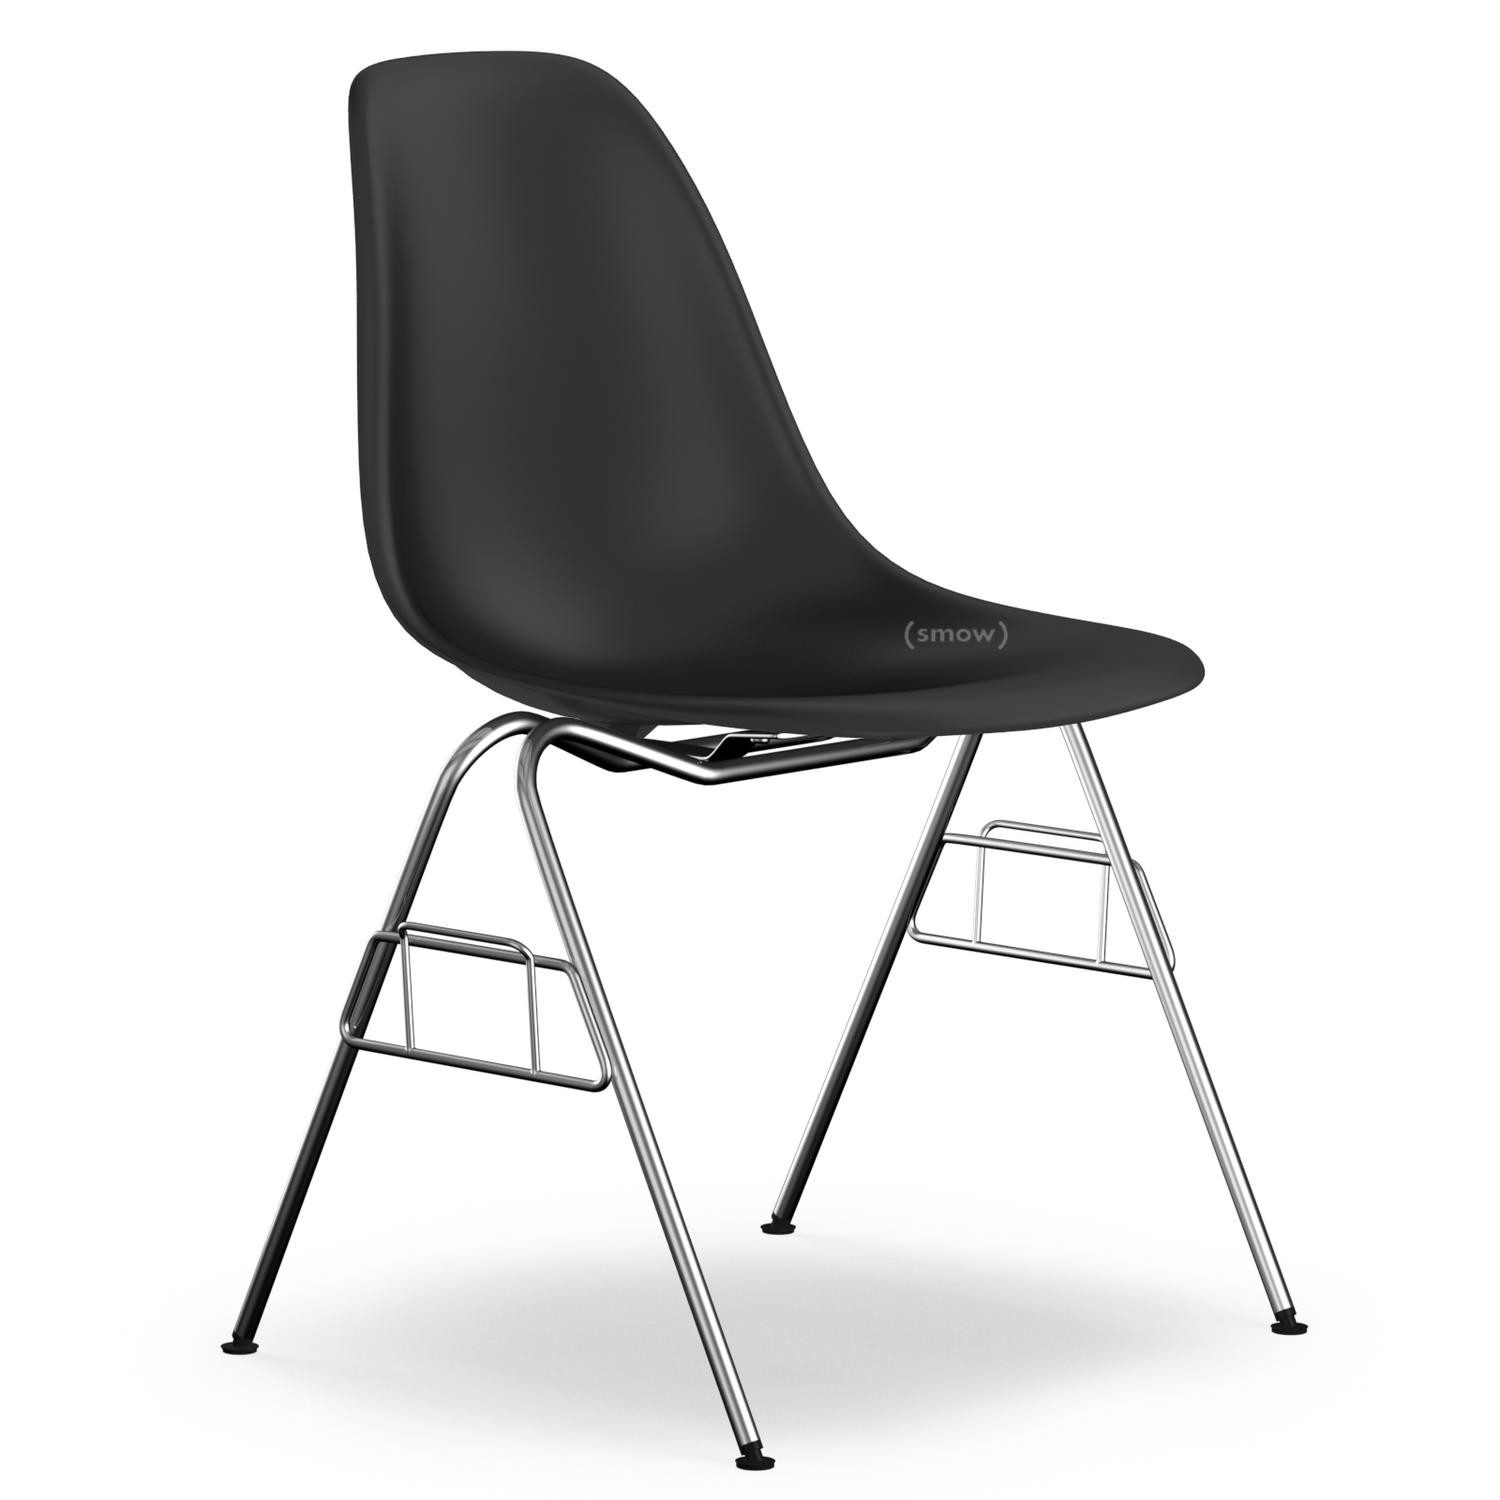 vitra eames plastic side chair dss by charles ray eames 1950 designer furniture by. Black Bedroom Furniture Sets. Home Design Ideas